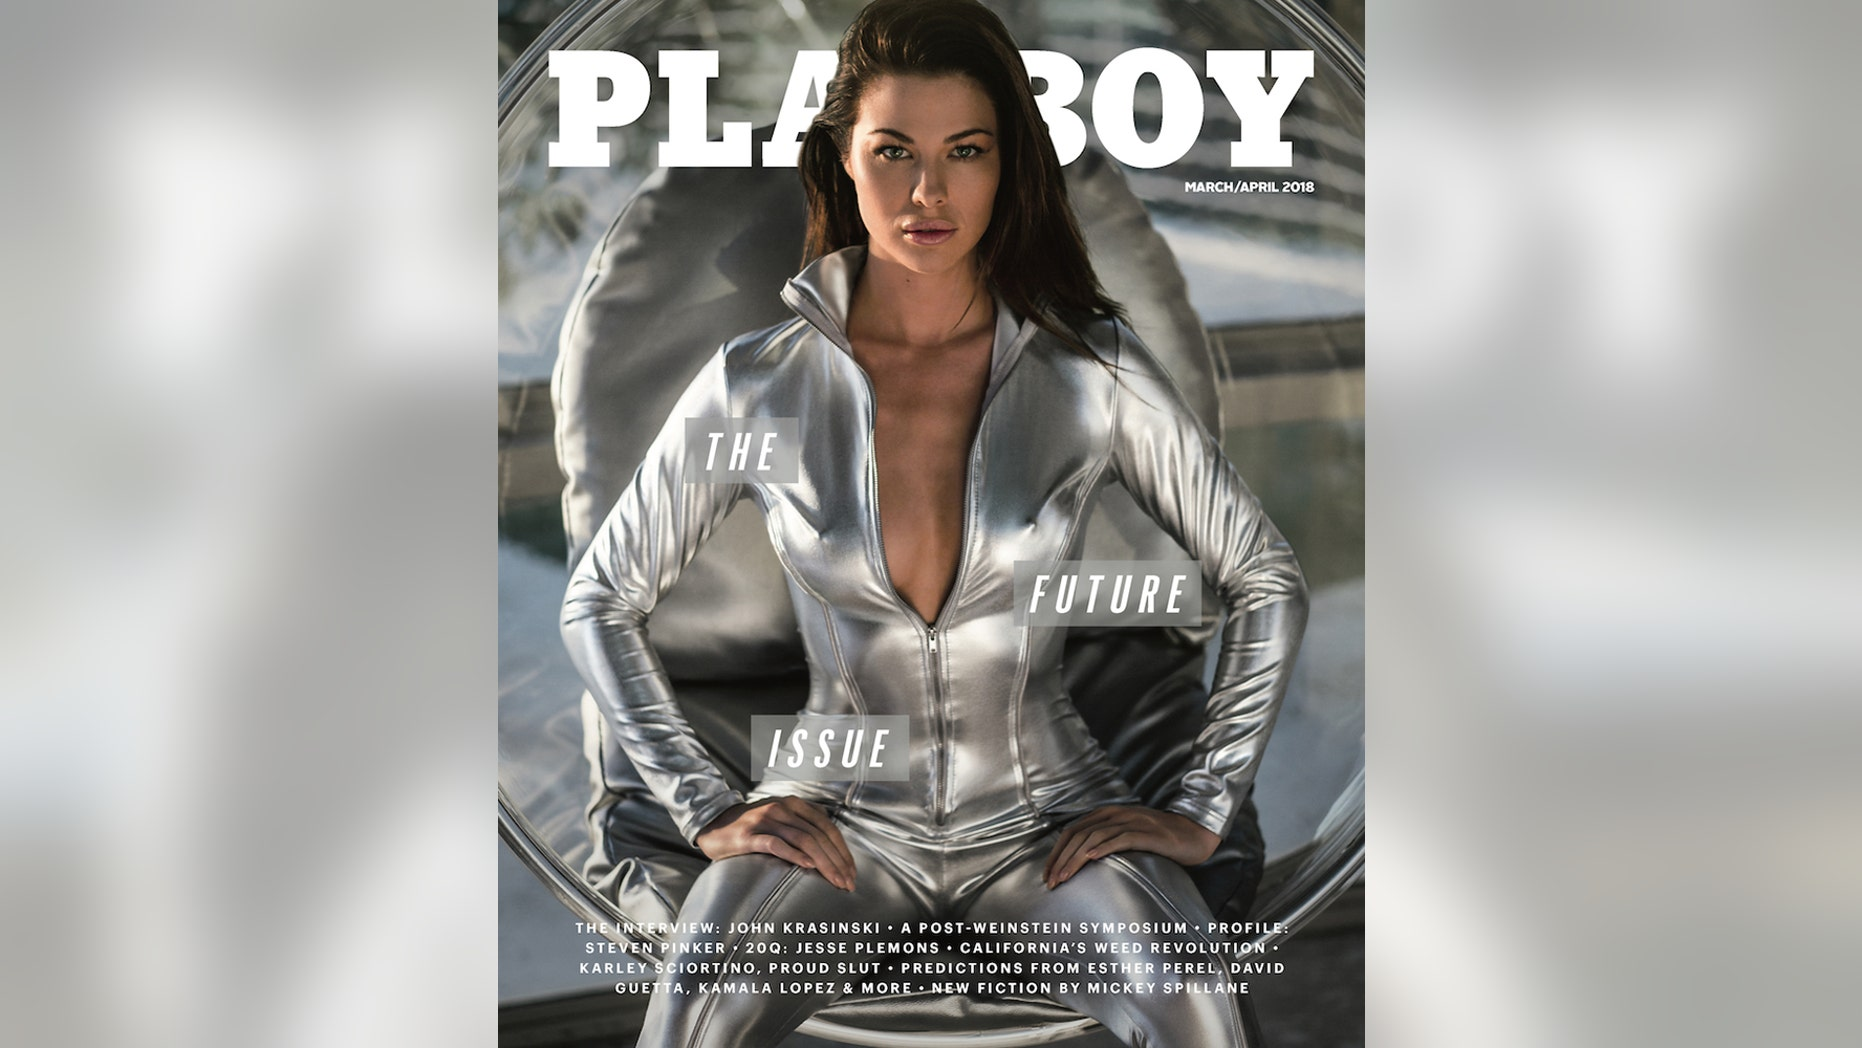 """Playboy unveiled """"The Future Issue"""" as the March/April 2018 edition, via Instagram today, with March Playmate Jenny Watwood on the cover."""